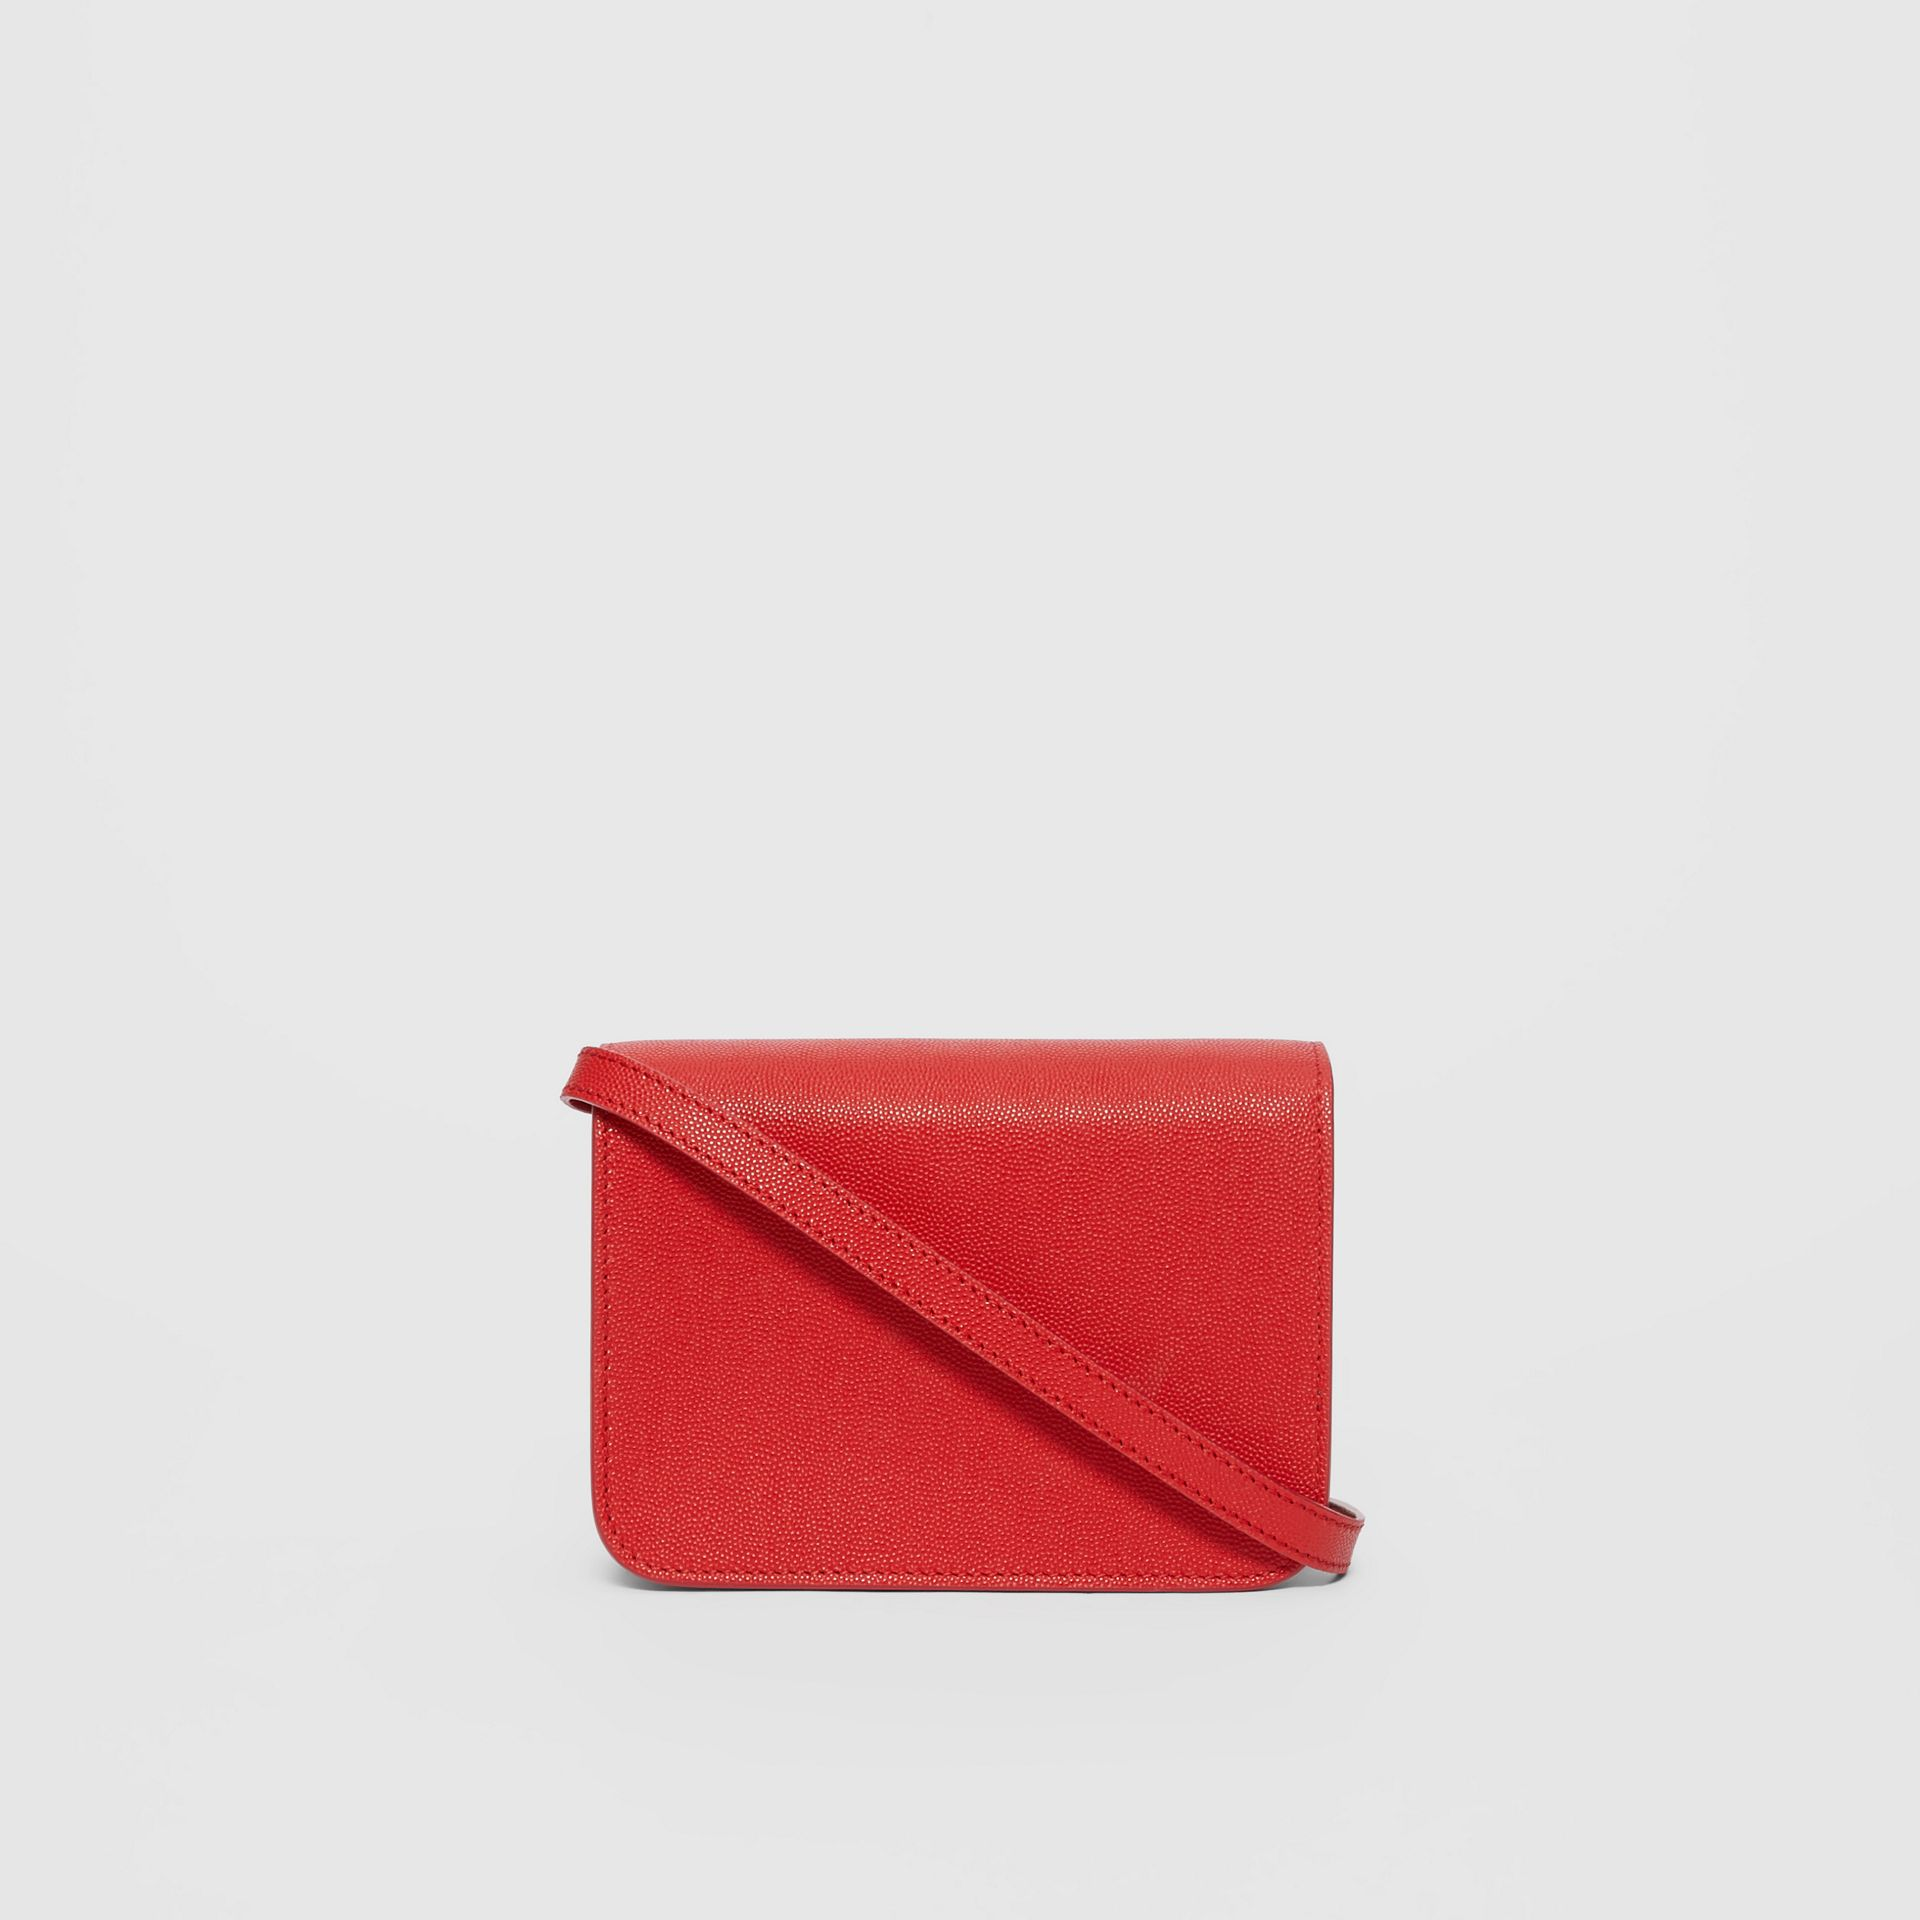 Mini Grainy Leather TB Bag in Bright Red - Women | Burberry - gallery image 7